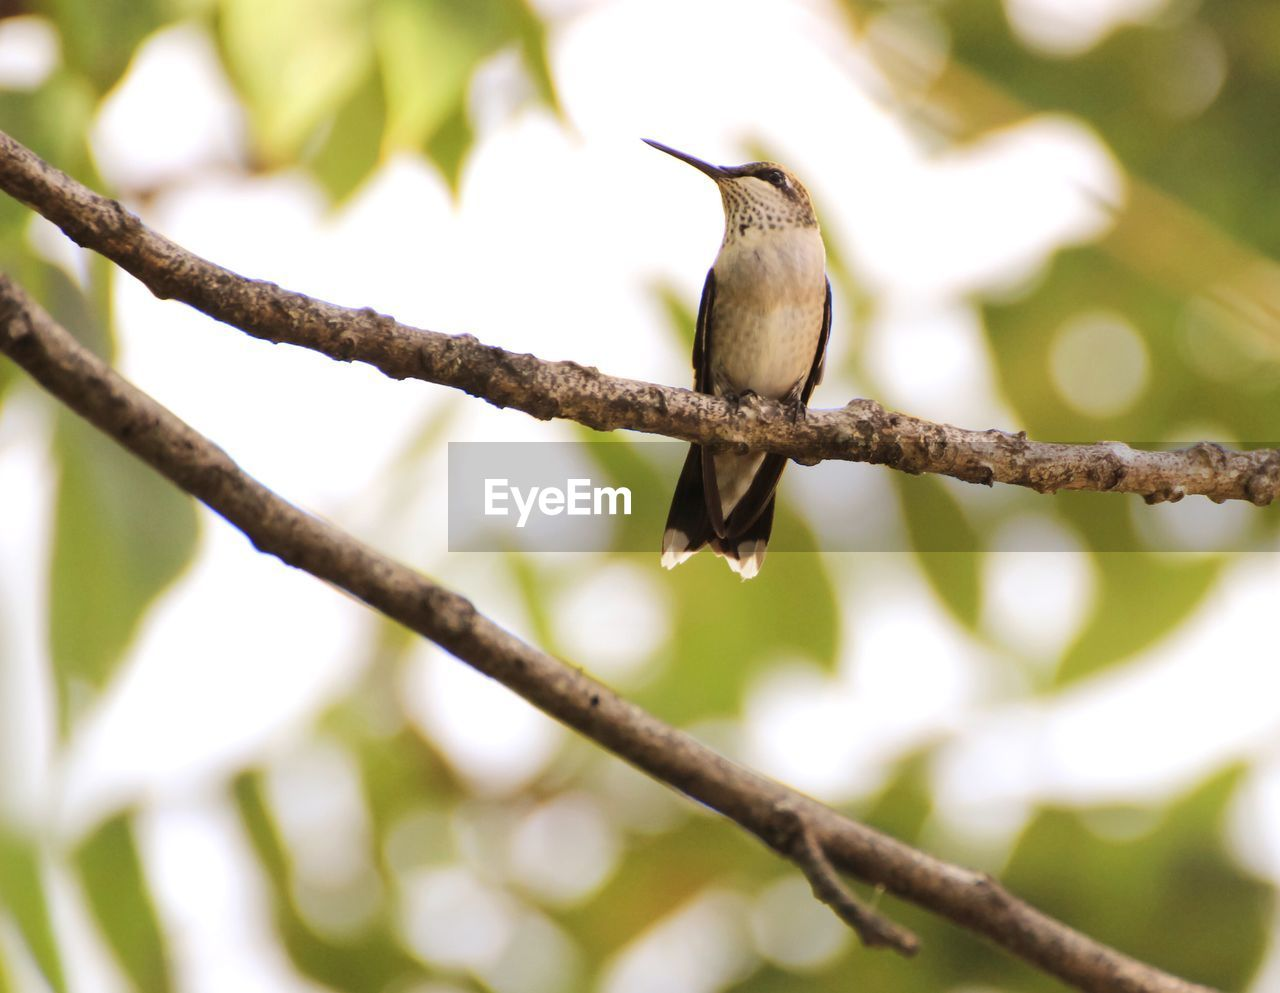 Low angle view of bird perching on branch